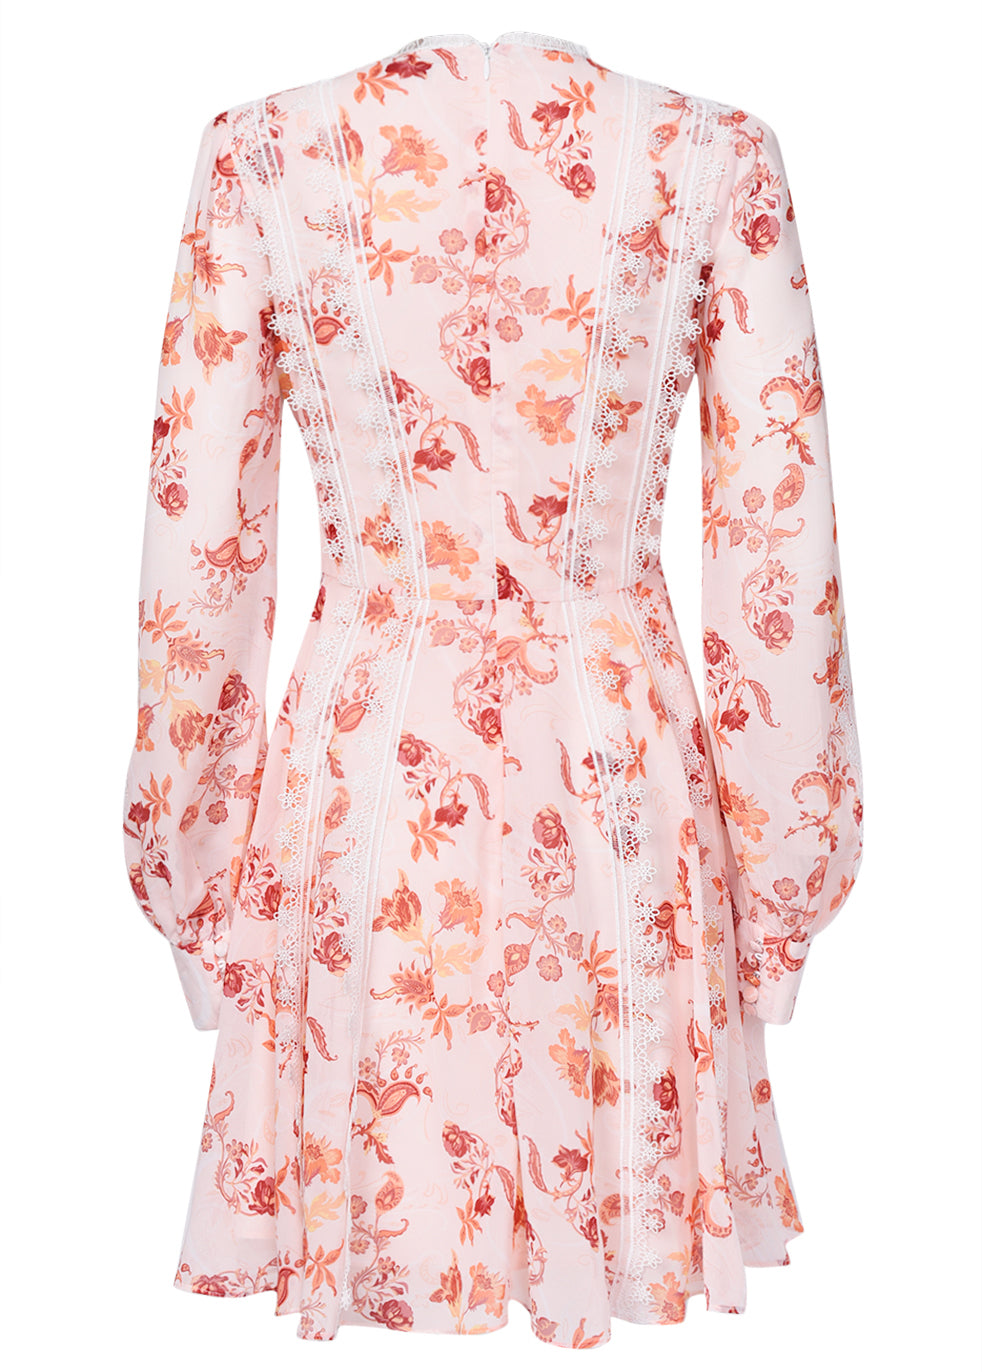 True Decadence Peach Orange Floral Corset Front Mini Dress